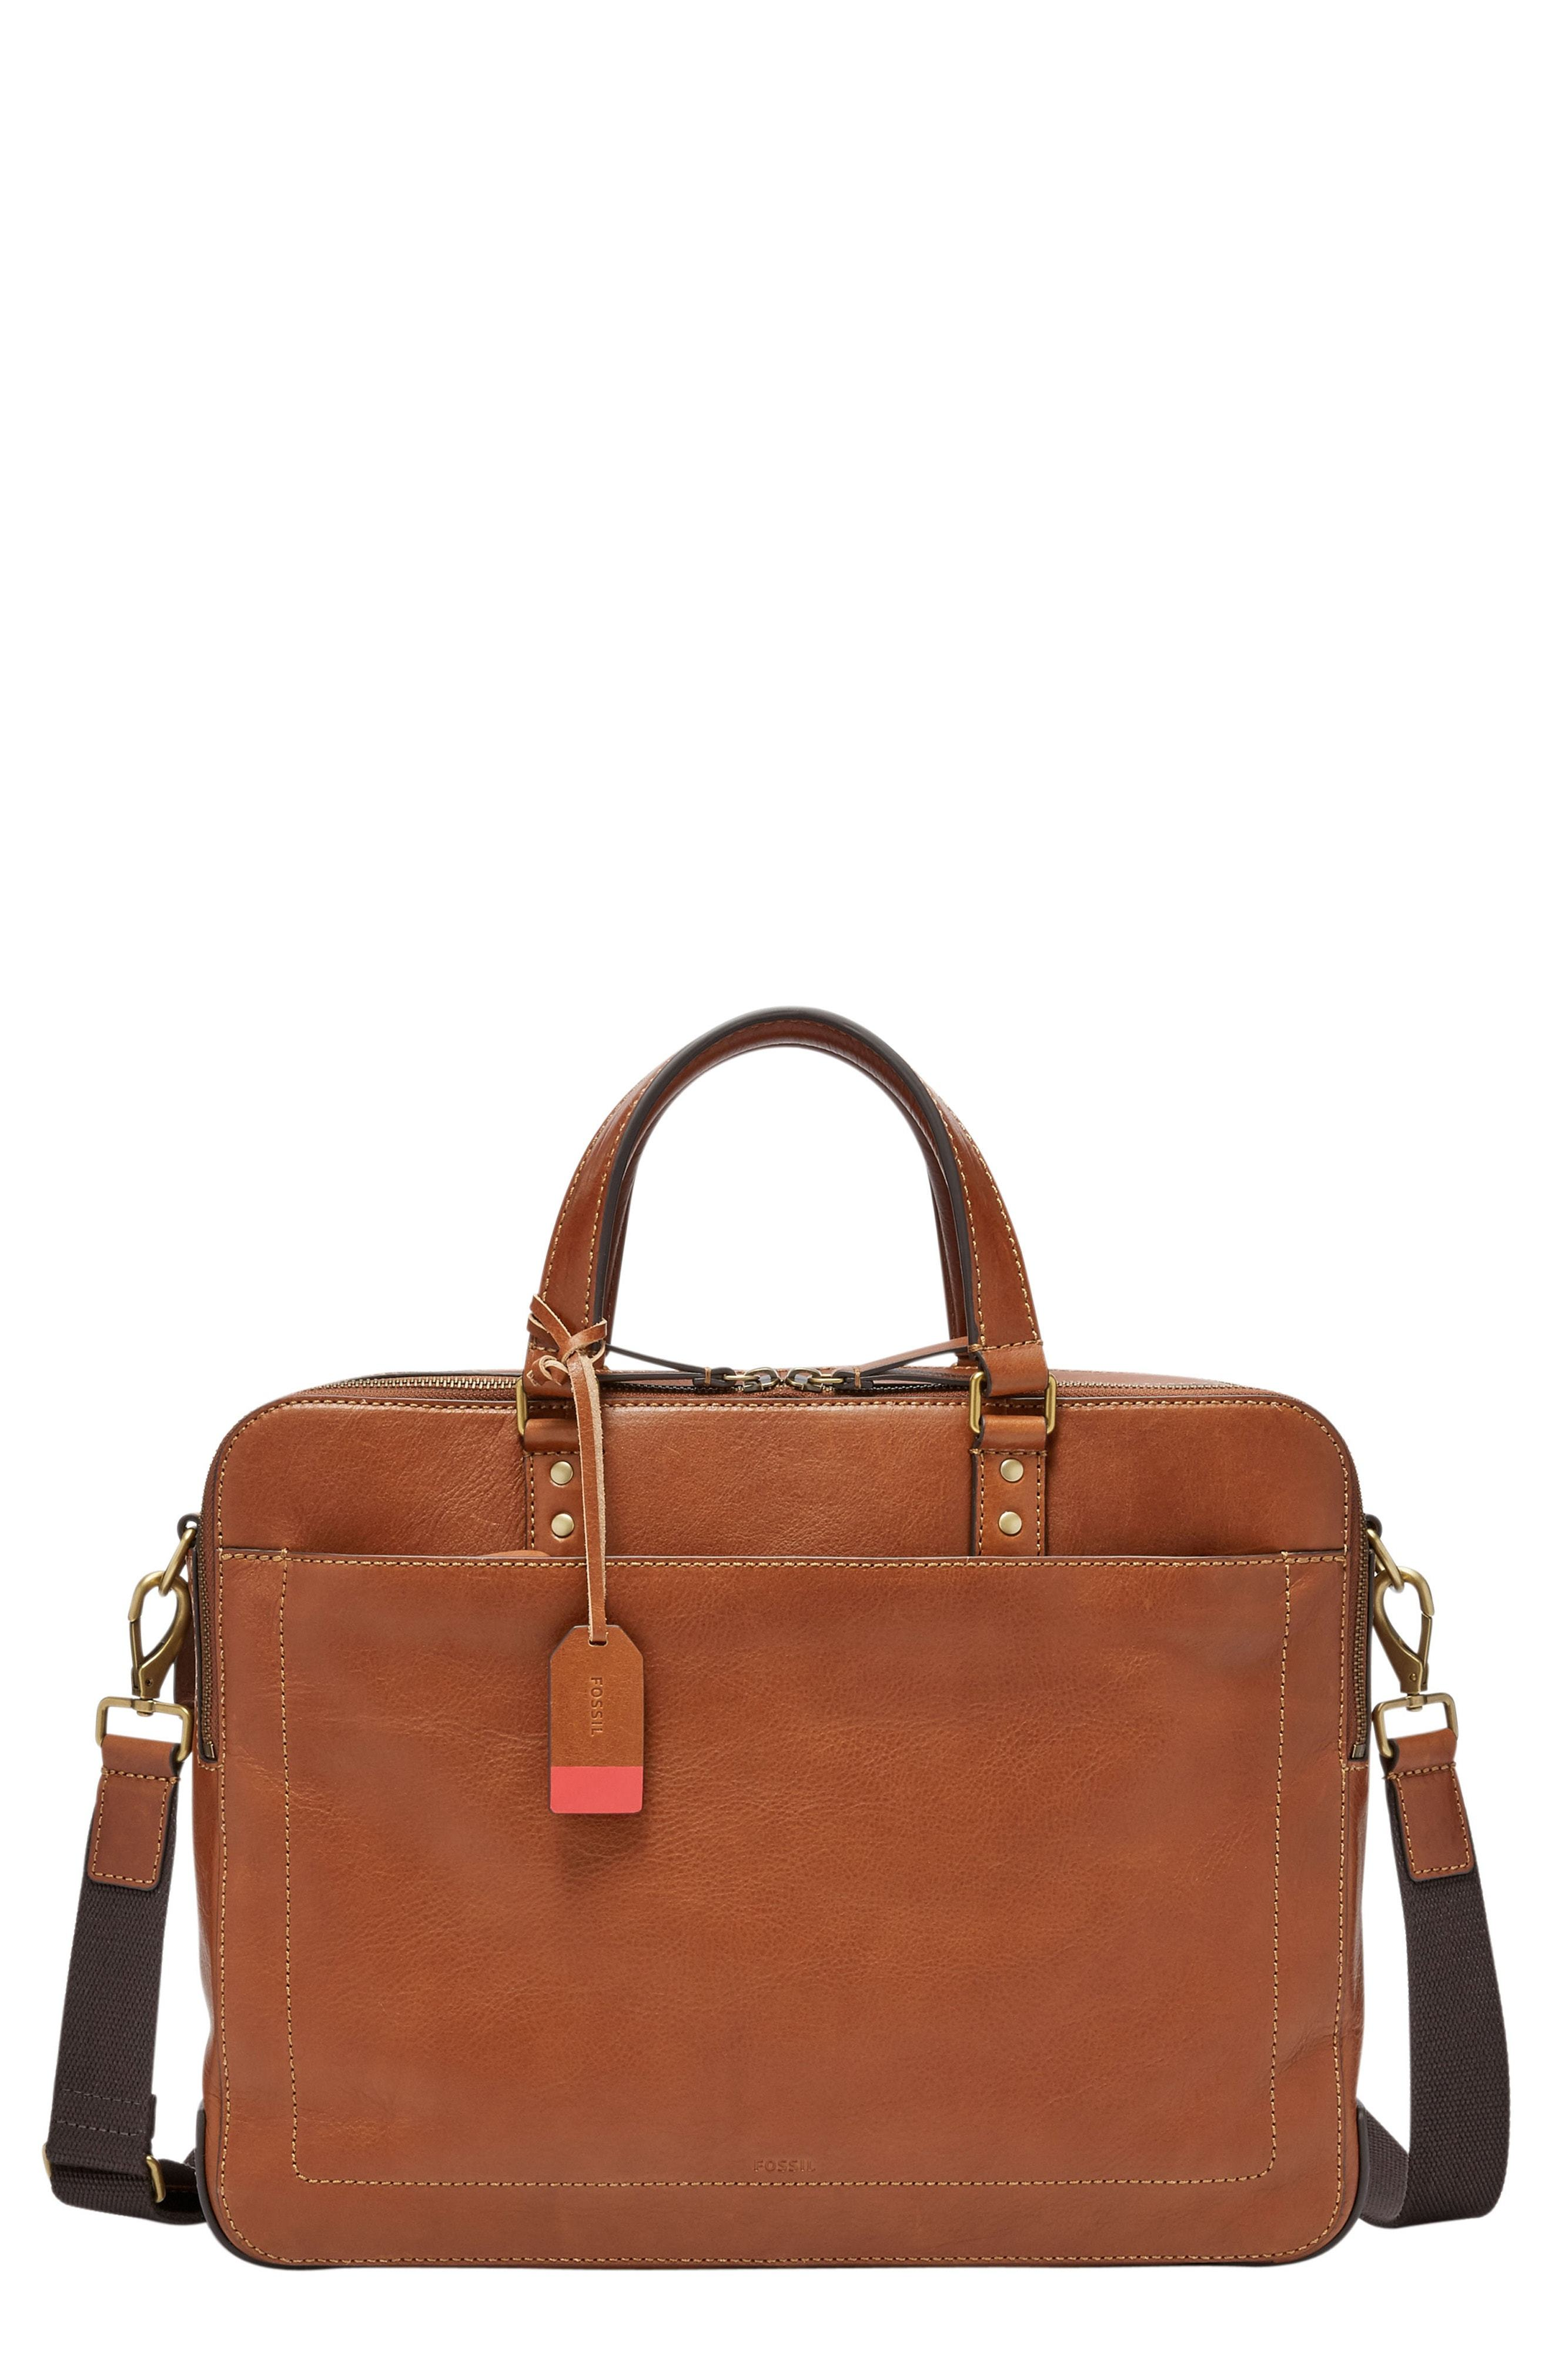 4bc4324b2a65 Fossil Defender Leather Briefcase